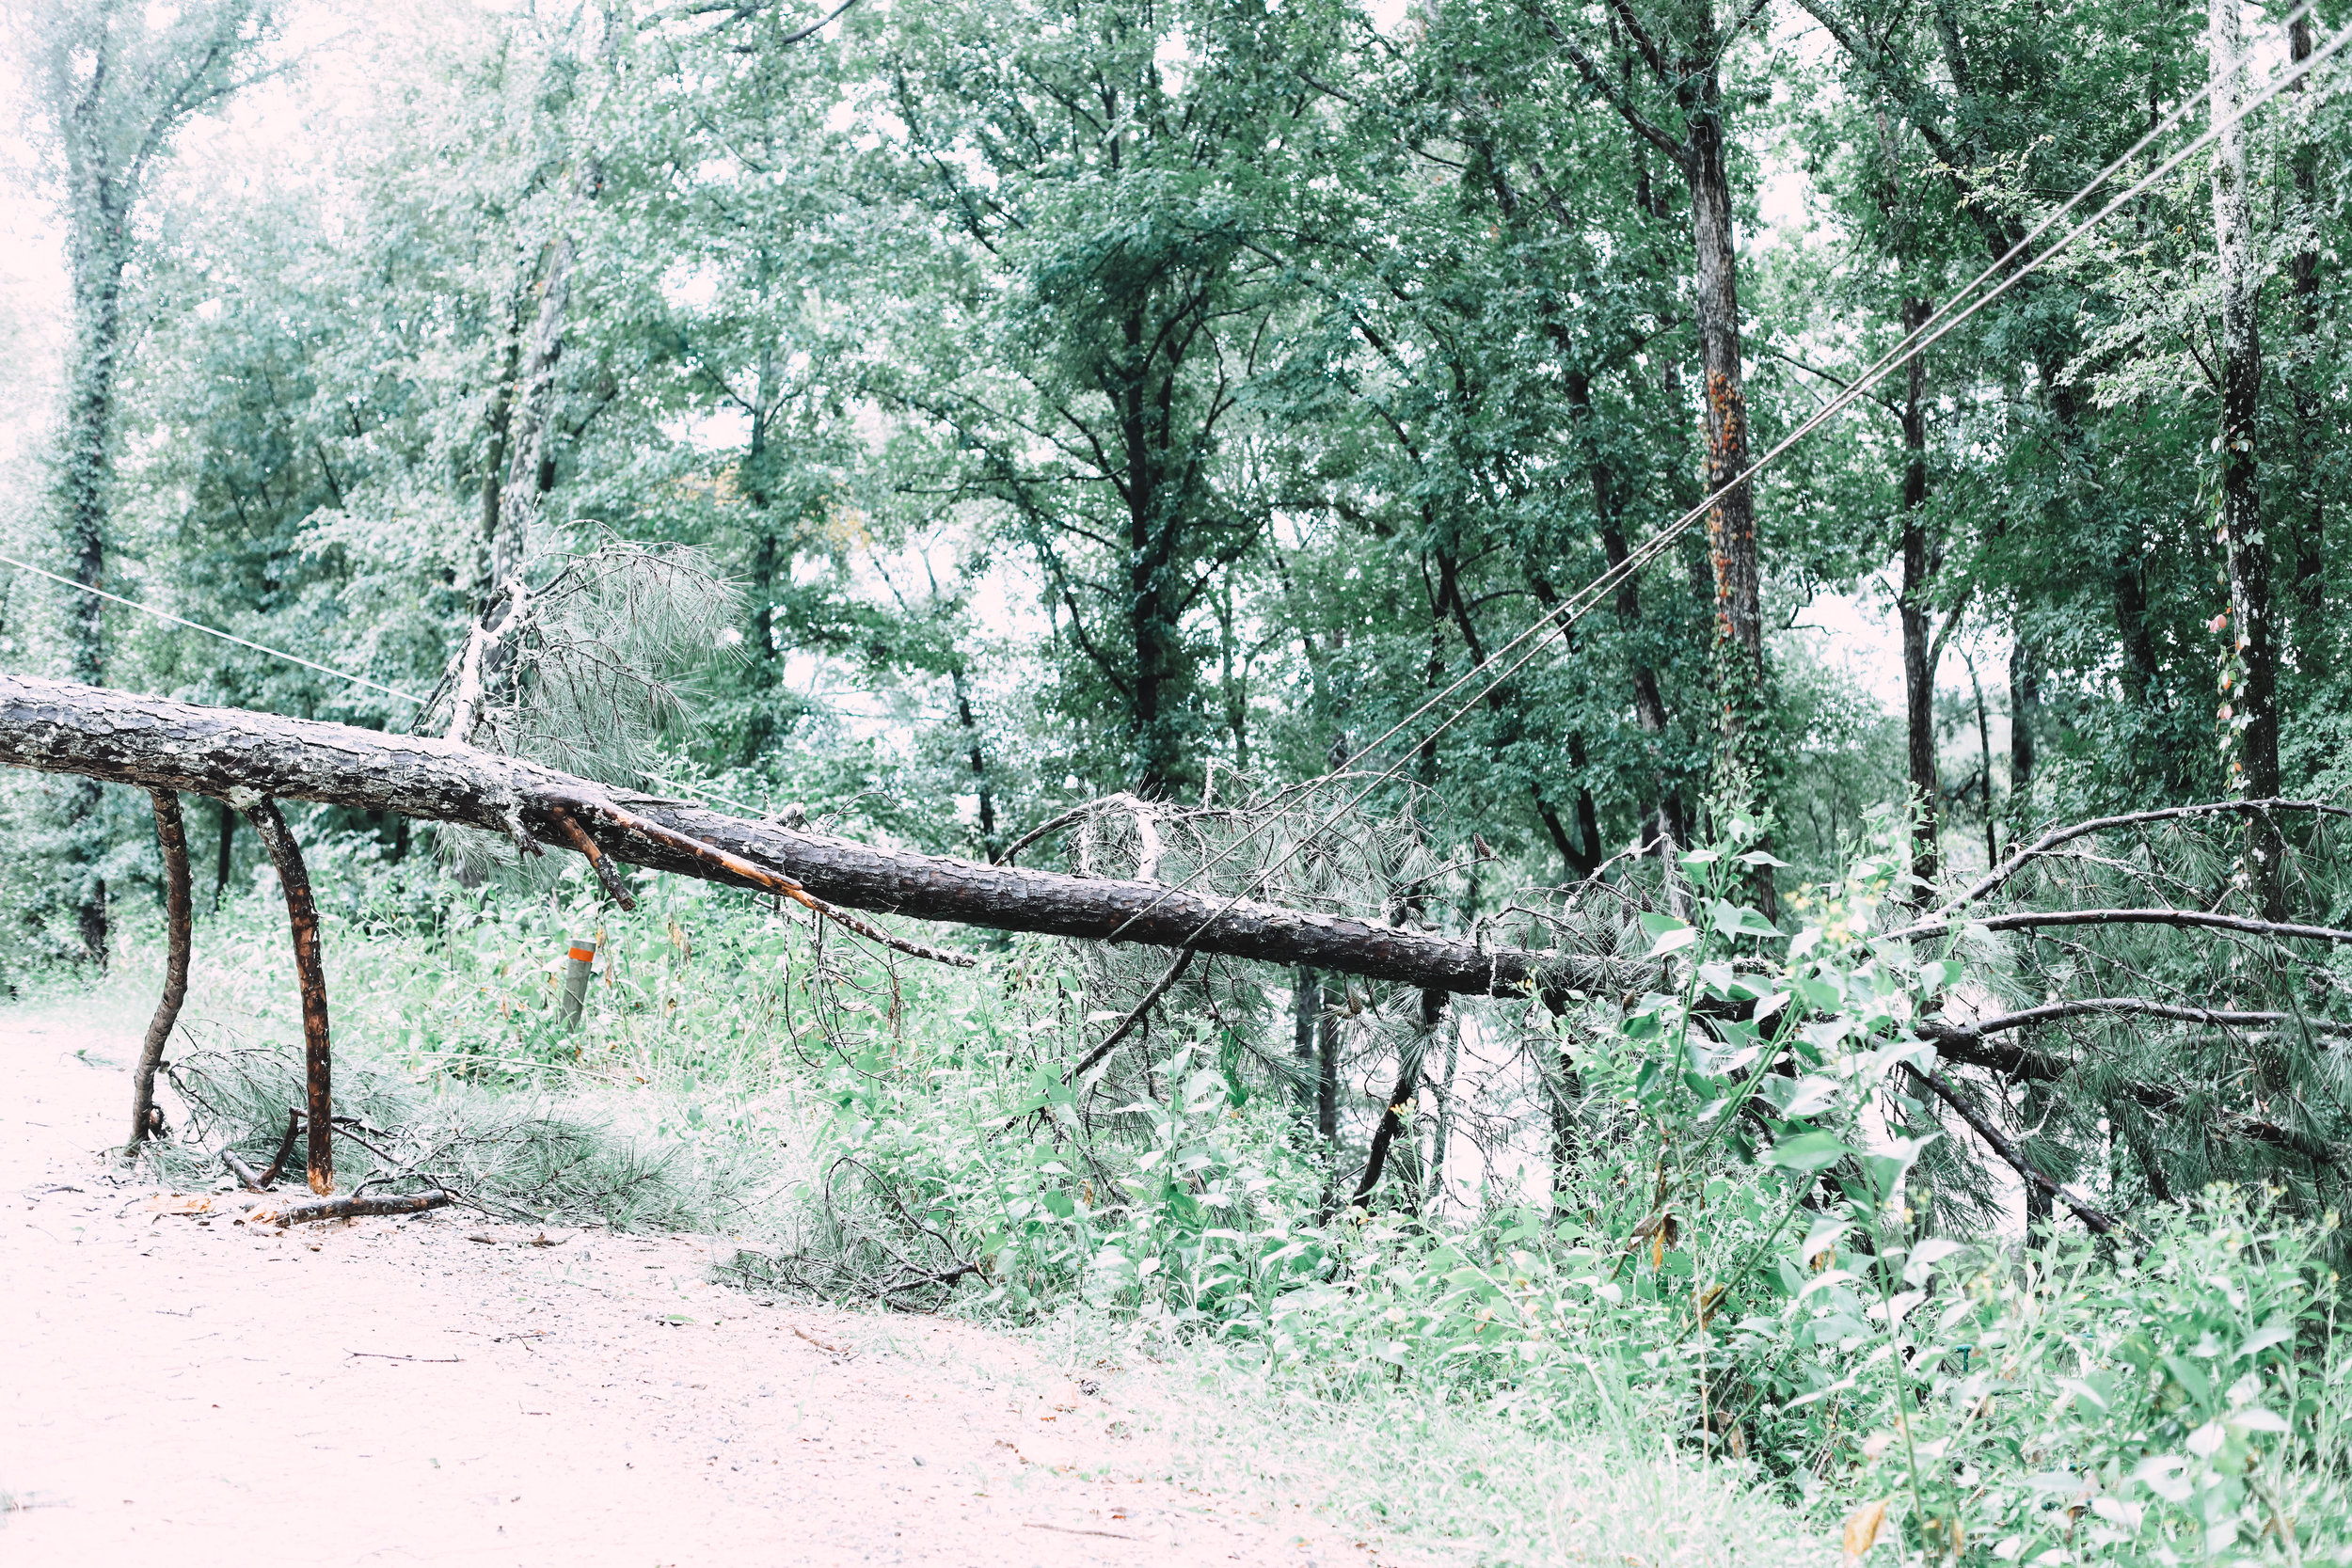 On Tuesday morning, we discovered the downed tree over the power line.